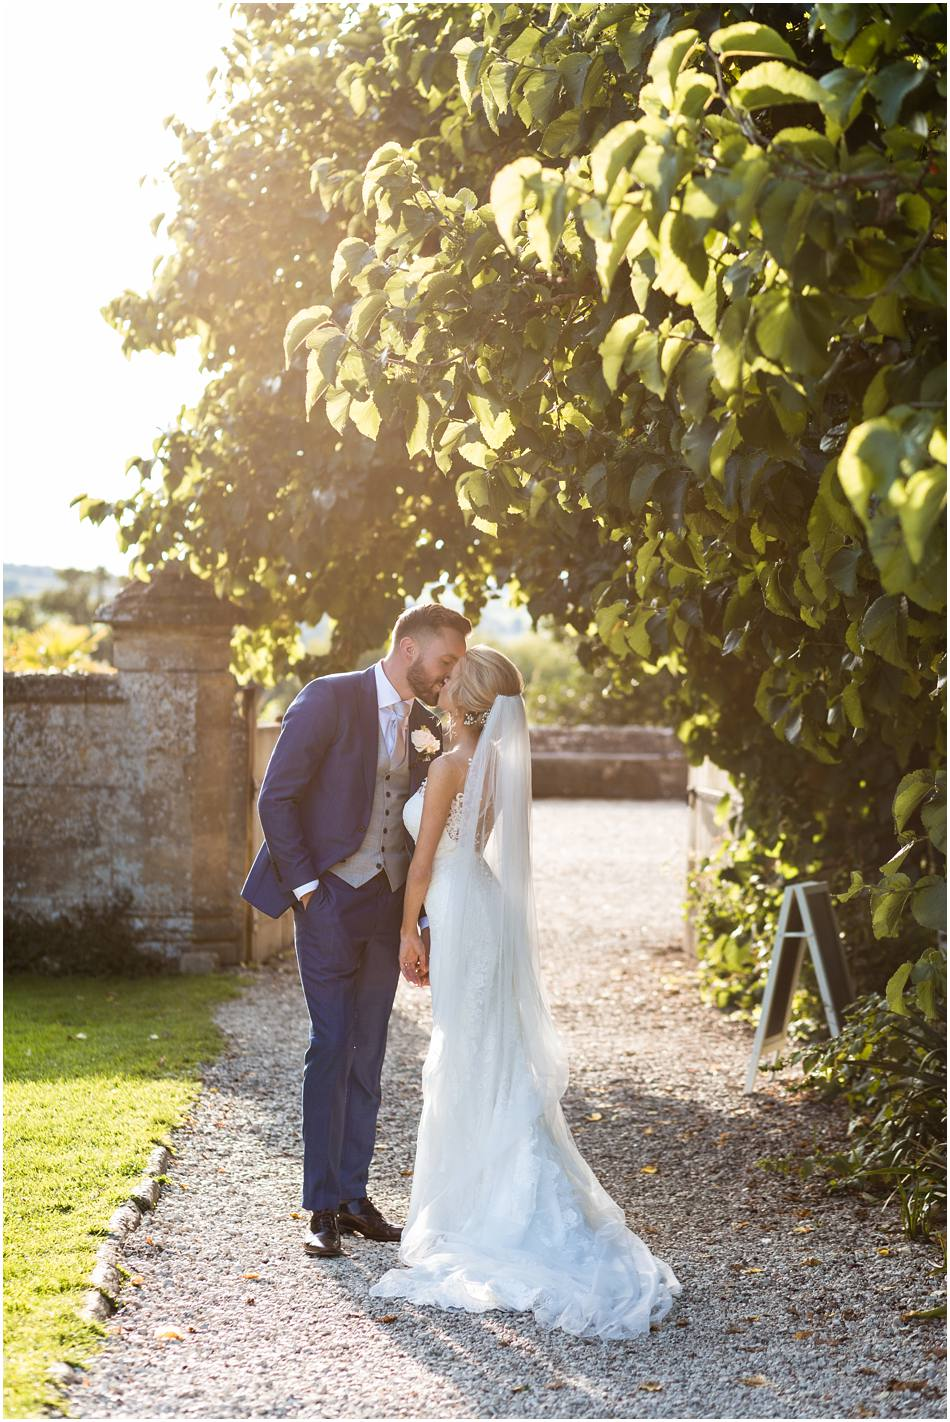 Sudeley Castle wedding photographer